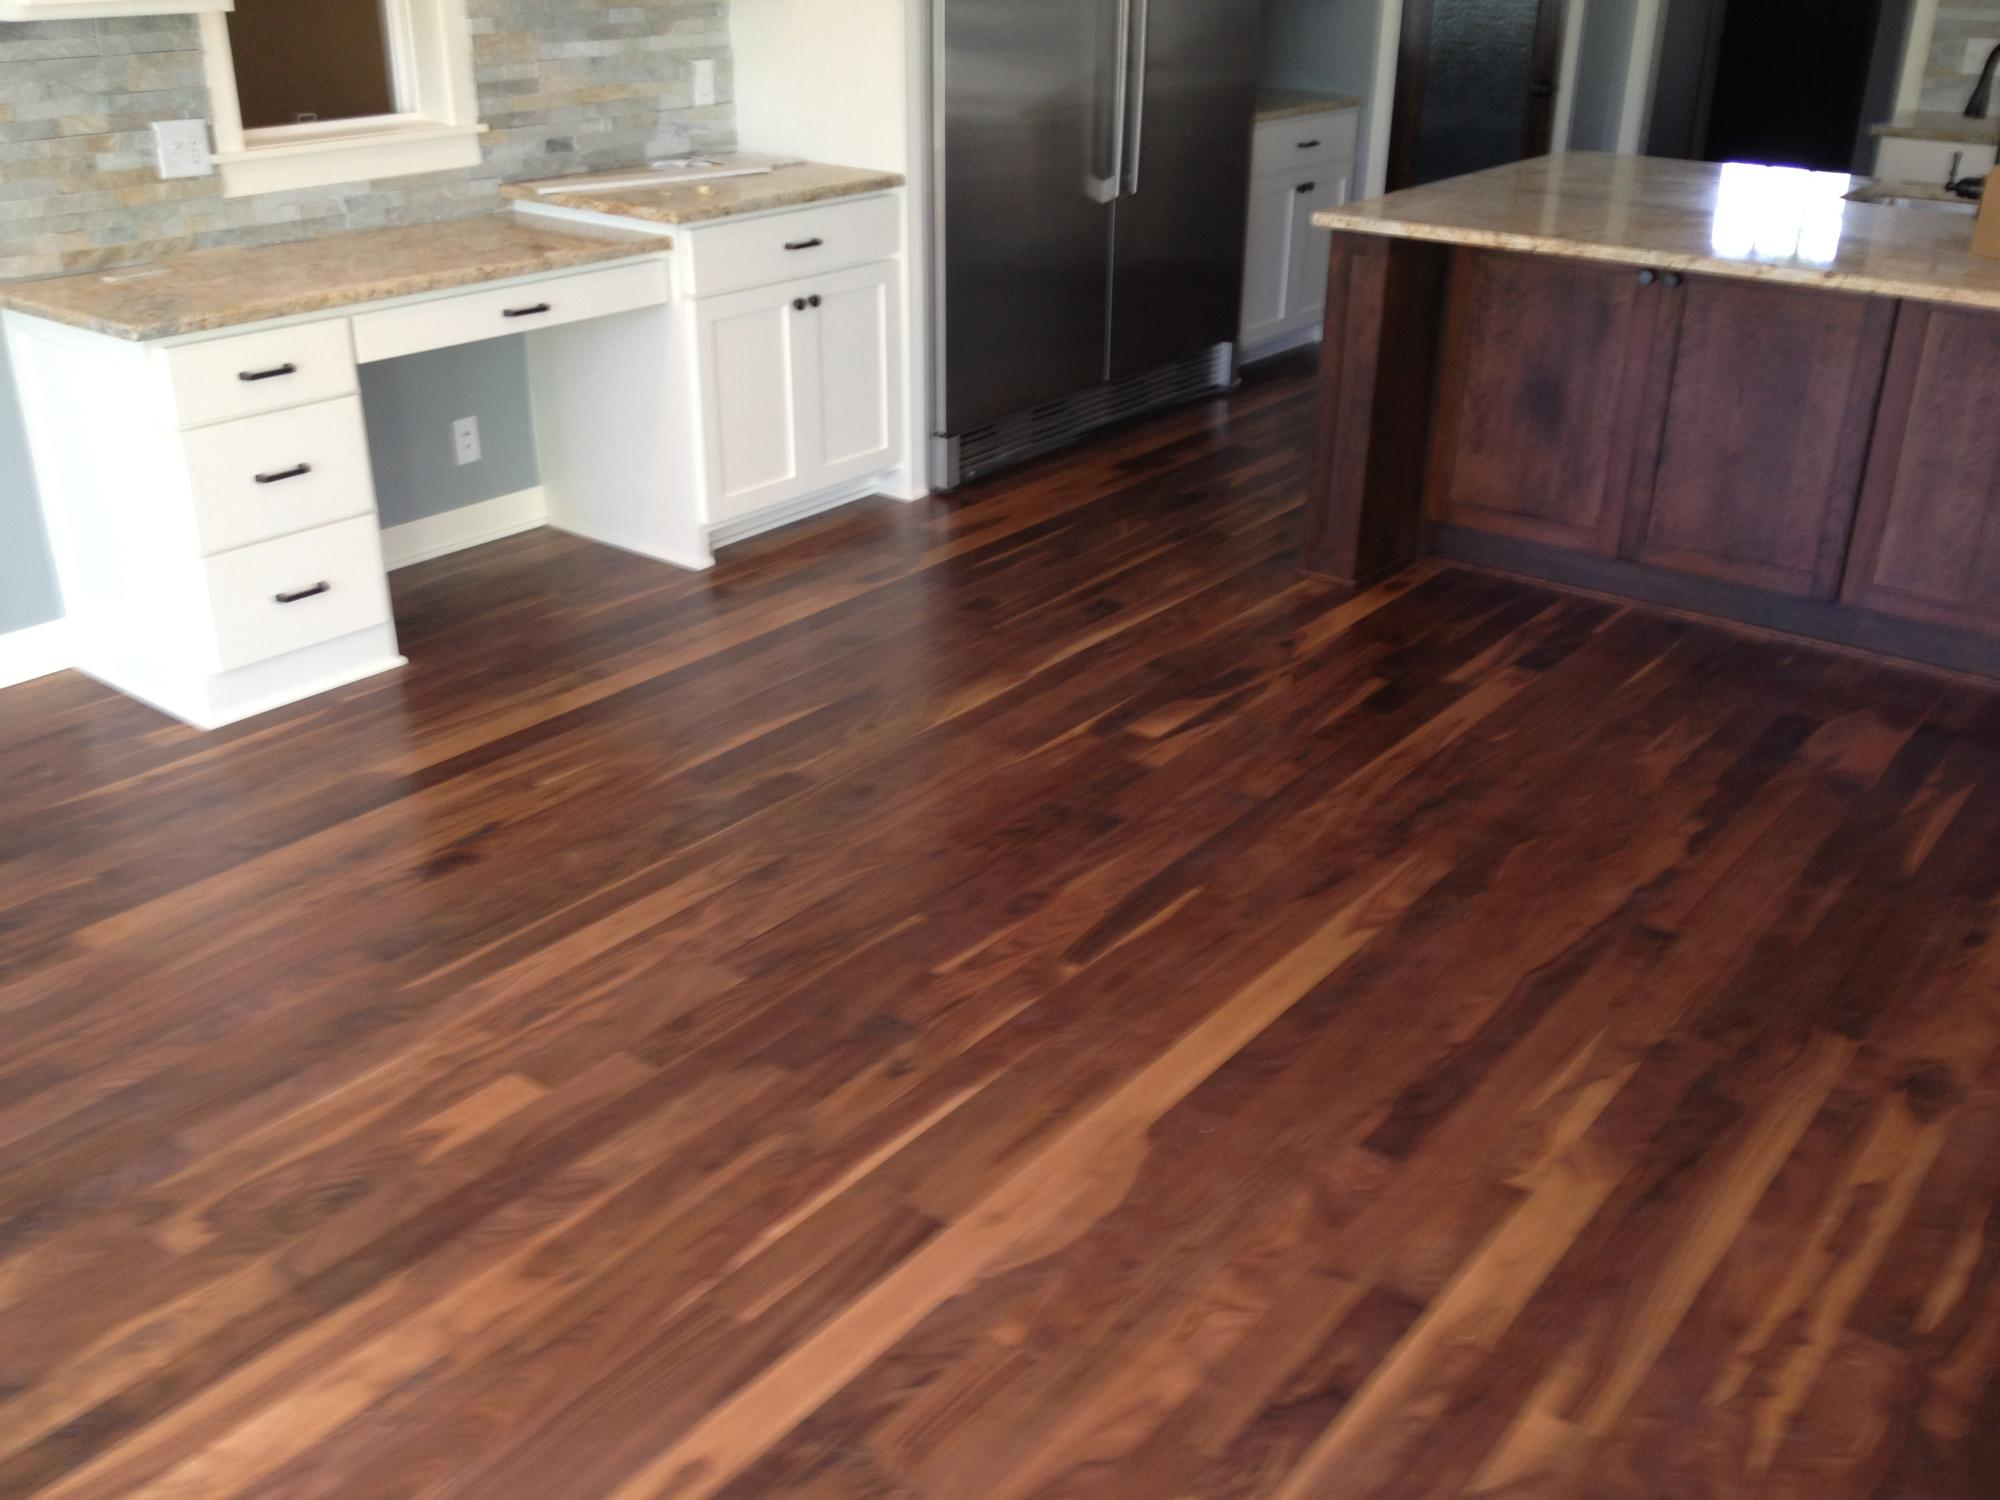 by in burford wooden floor steve services gloucestershire flooring